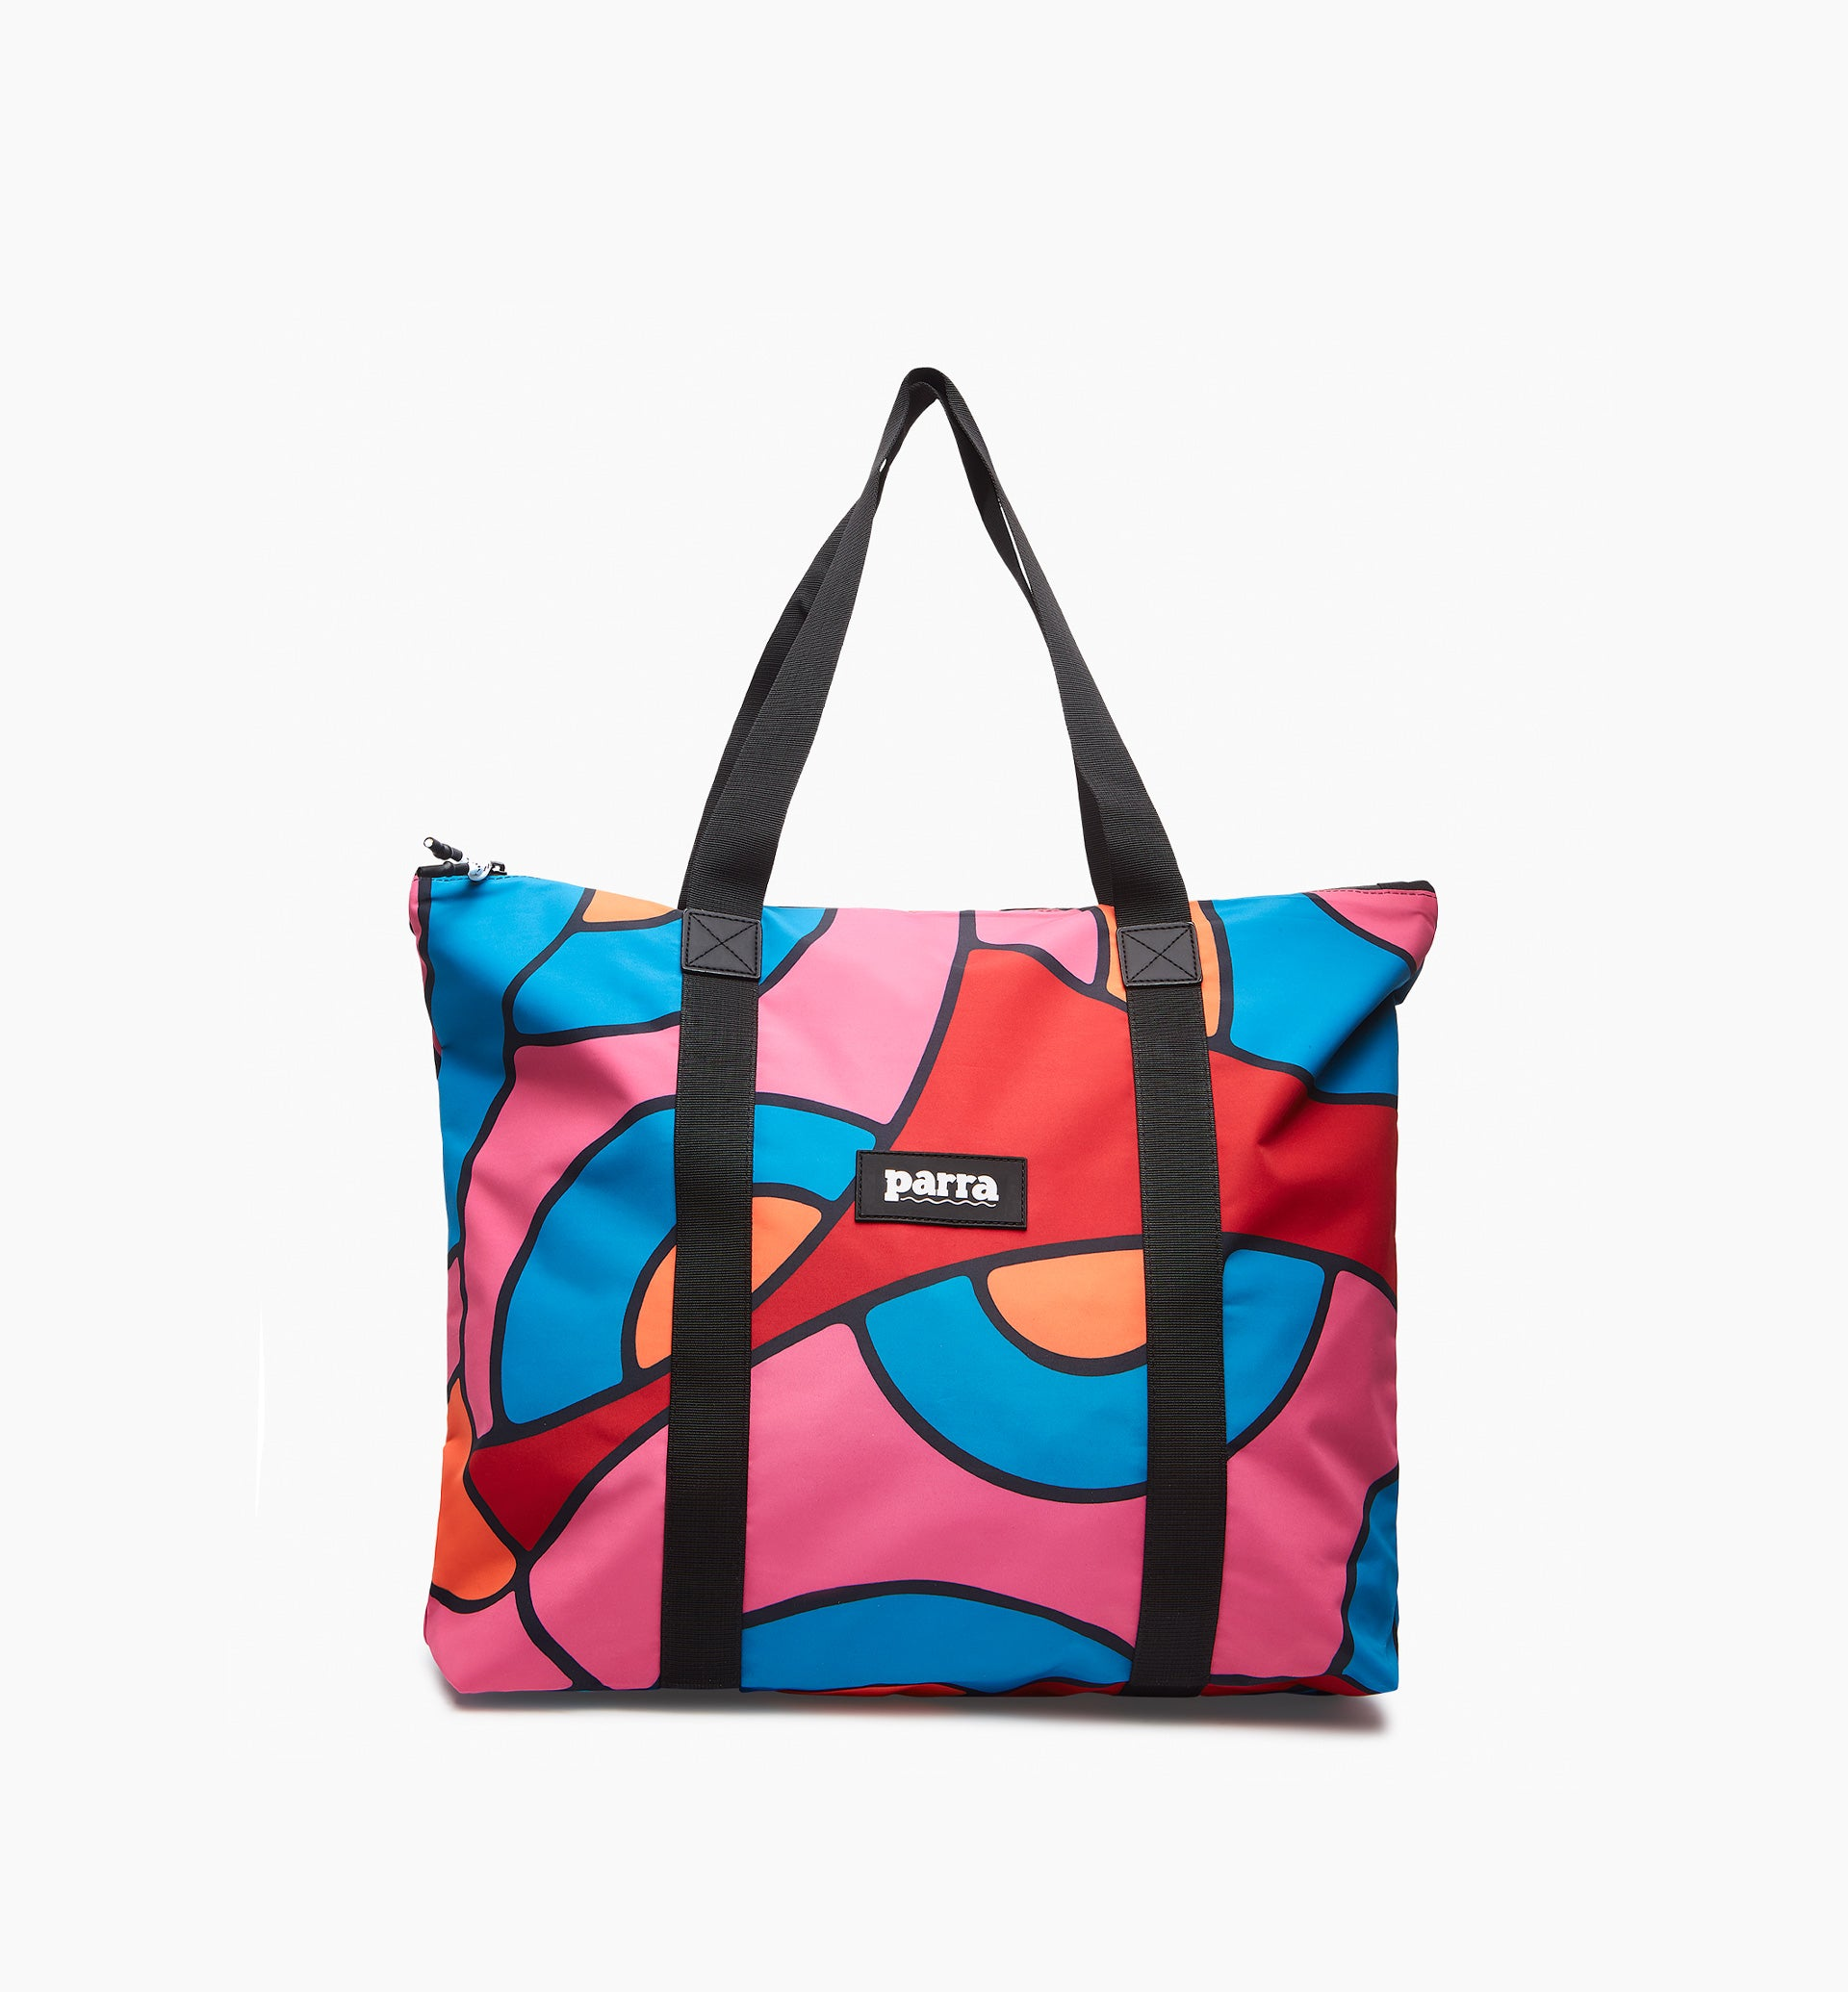 Parra - serpent pattern tote bag